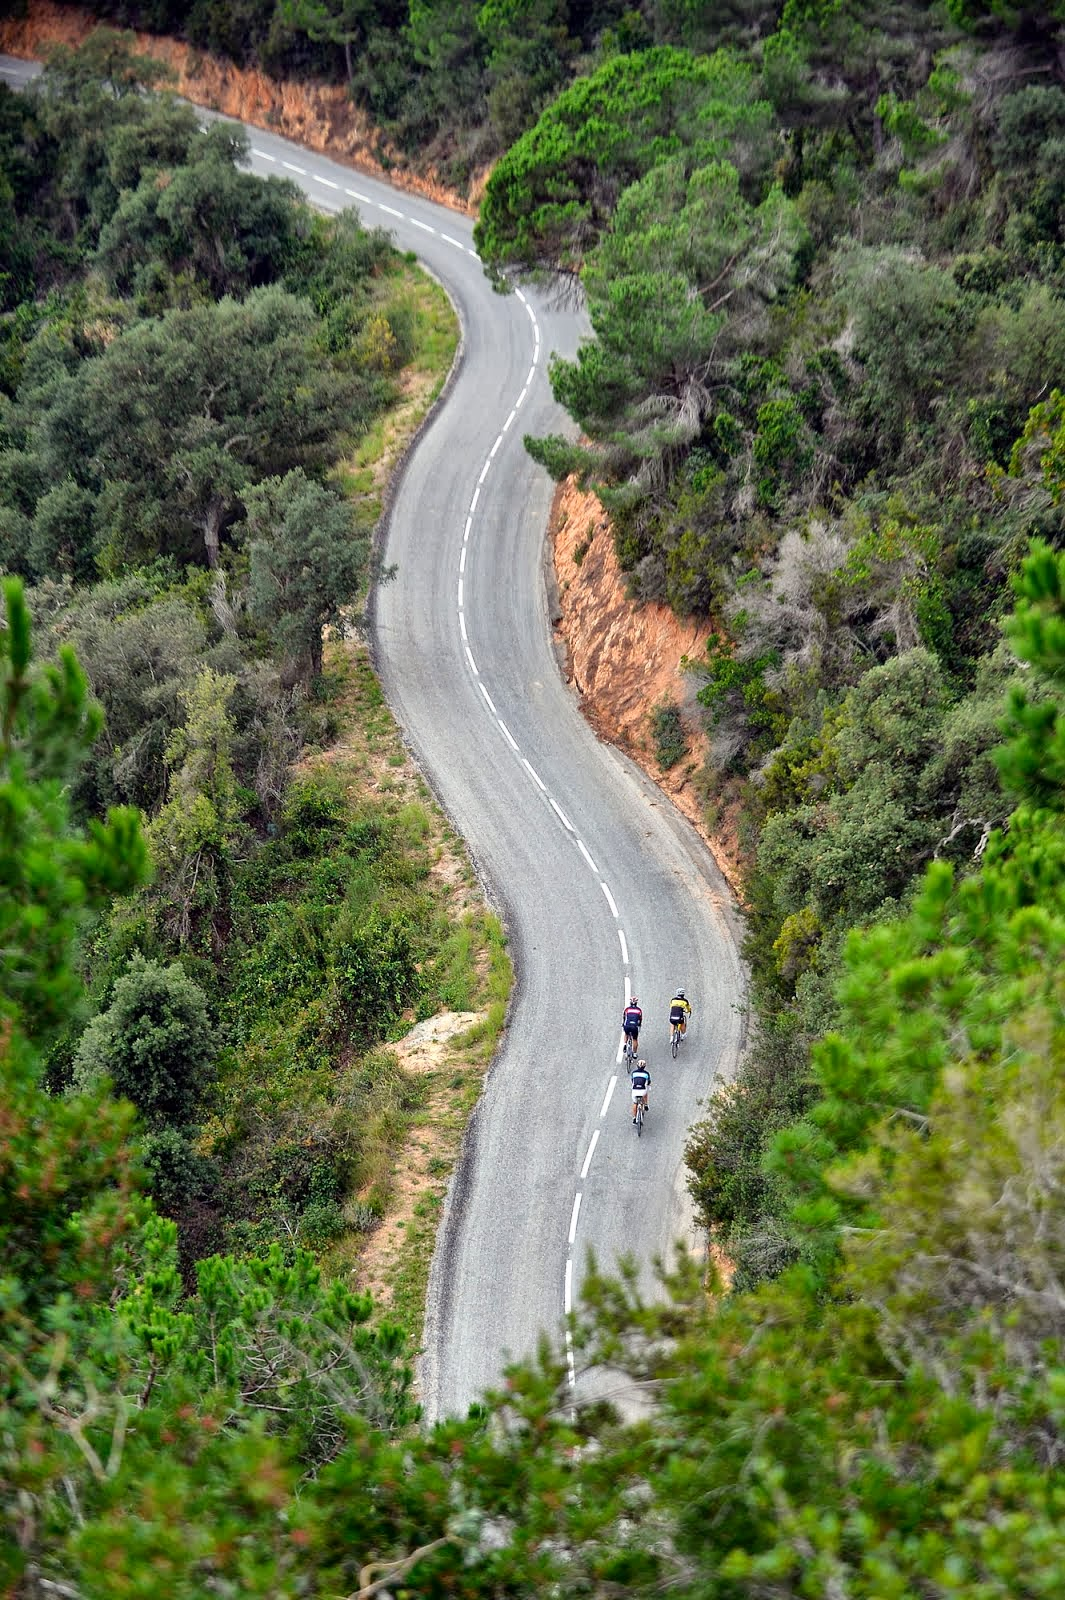 Visit our website! www.roadcycling.barcelona !!